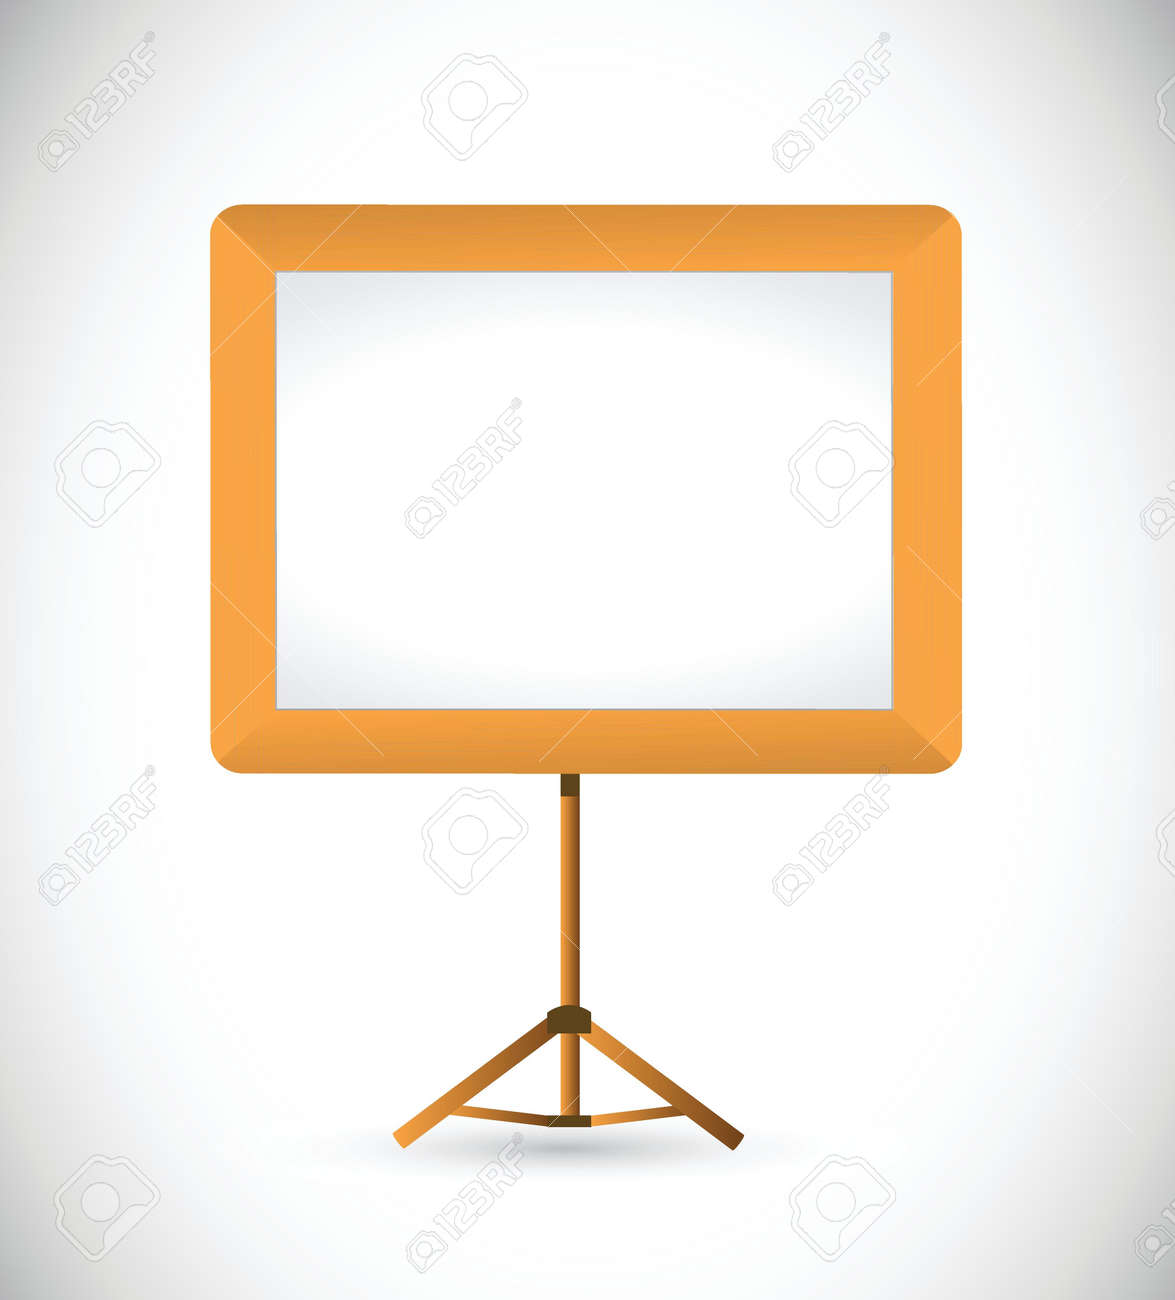 white board illustration design over a plain background Stock Vector - 21603230